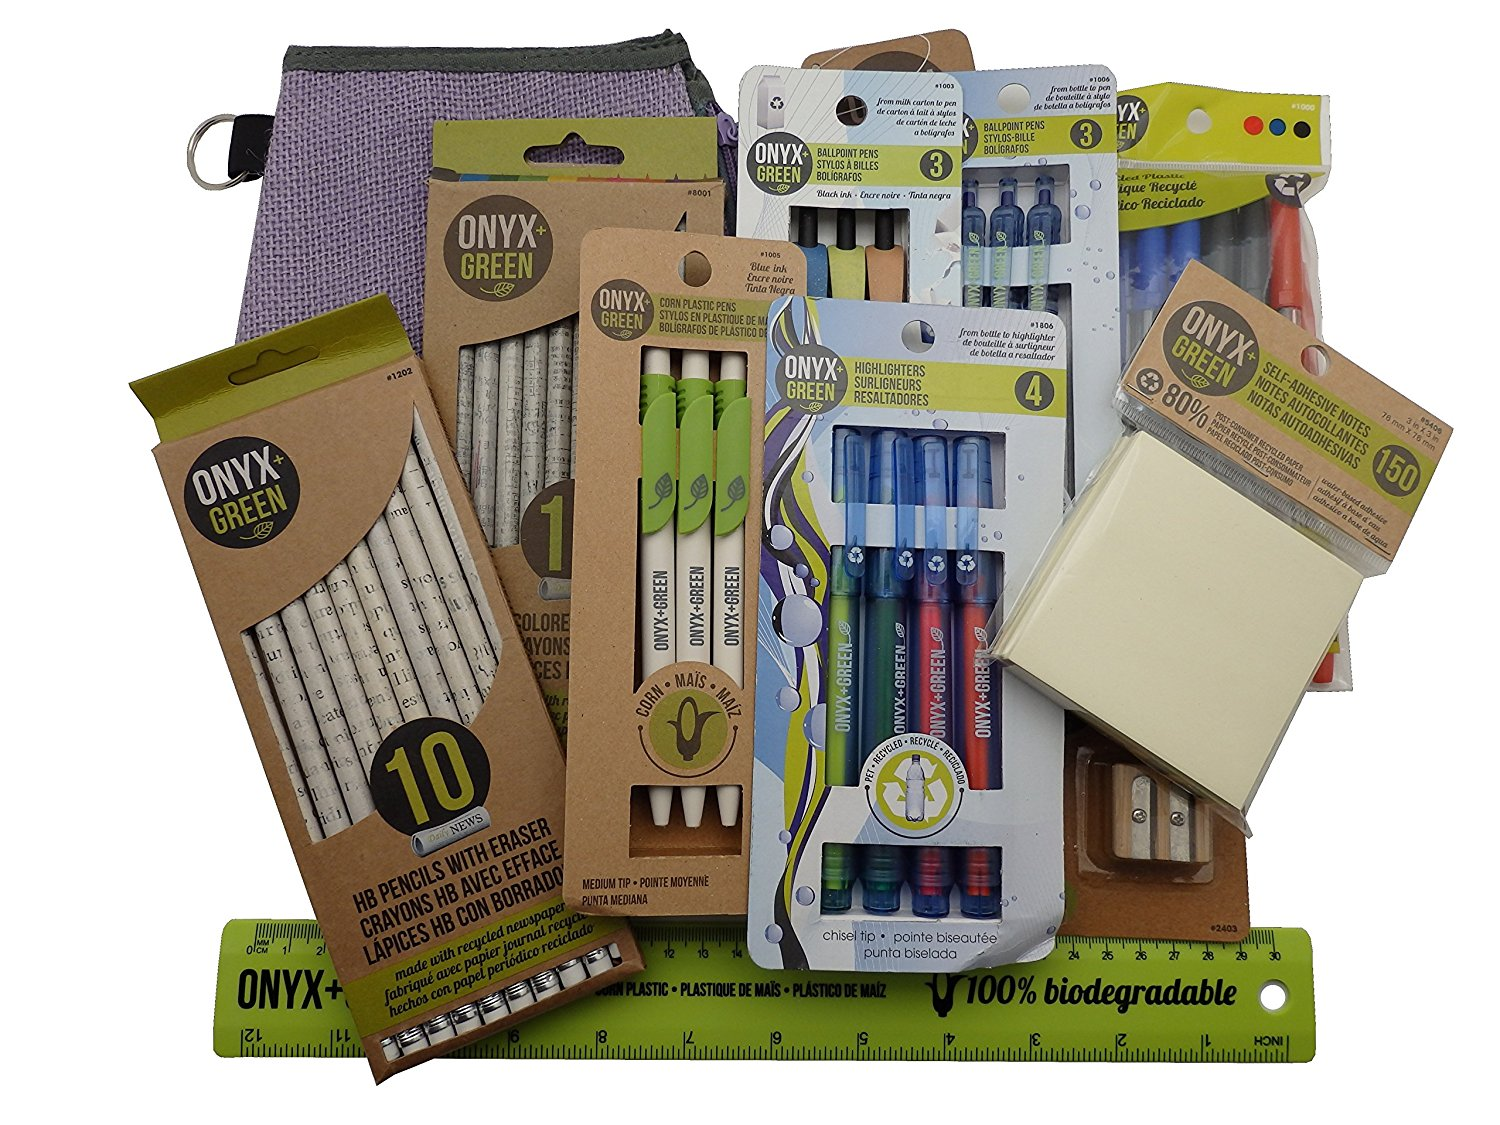 Recycled Sustainable Materials Green Eco Friendly School Office Supplies Kit - Sticky Notes Ruler Pen Pencils Sharpener - with a 100% jute pencil case.